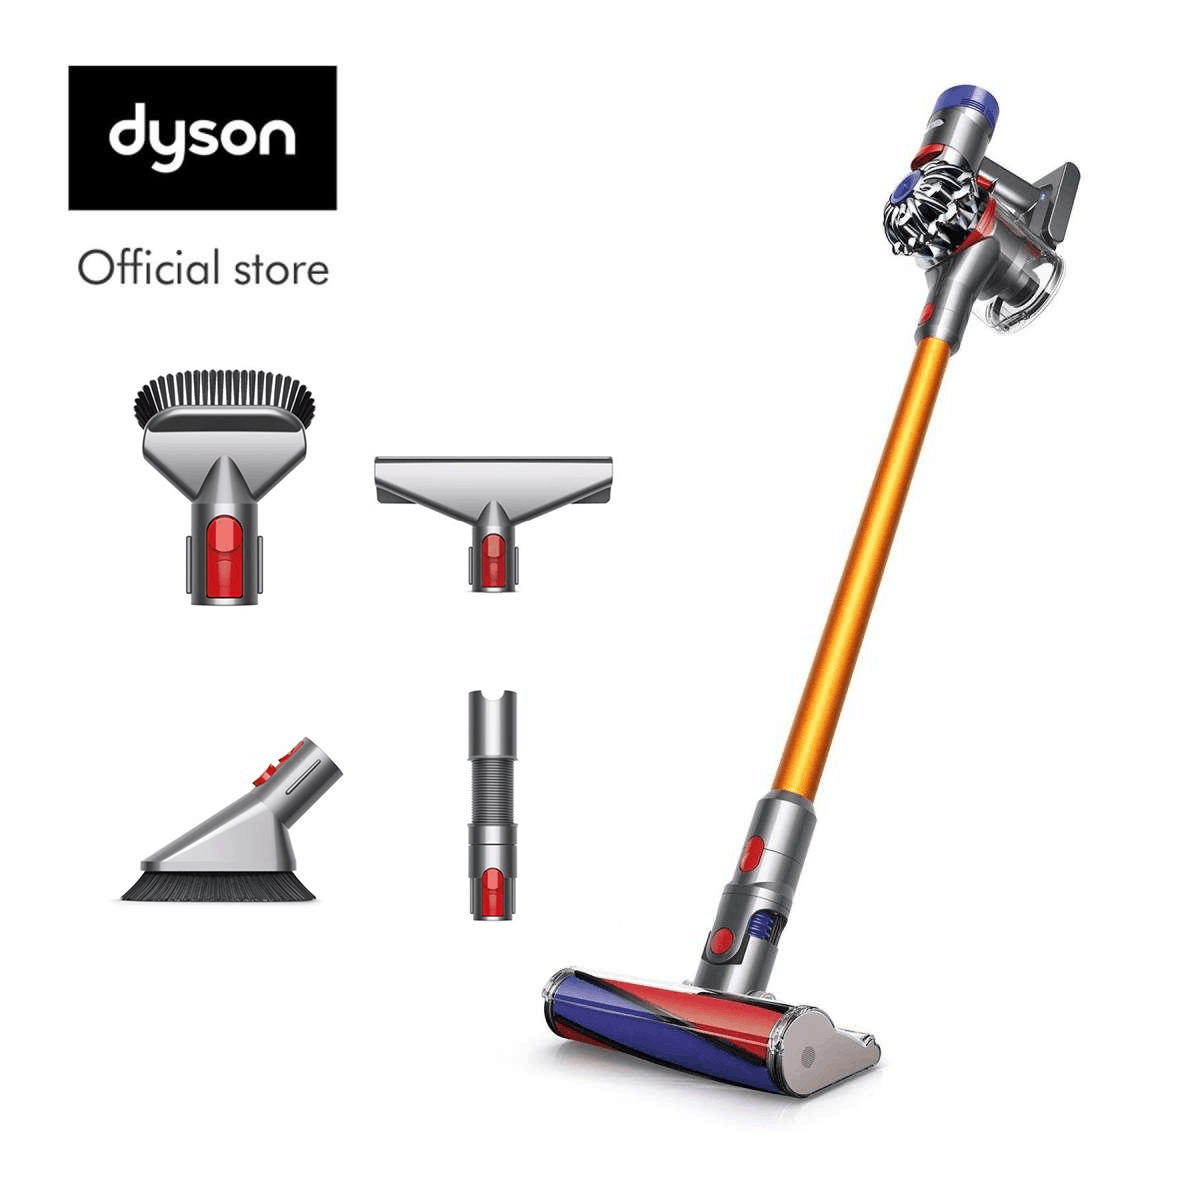 dyson handheld cordless vacuum cleaner singapore